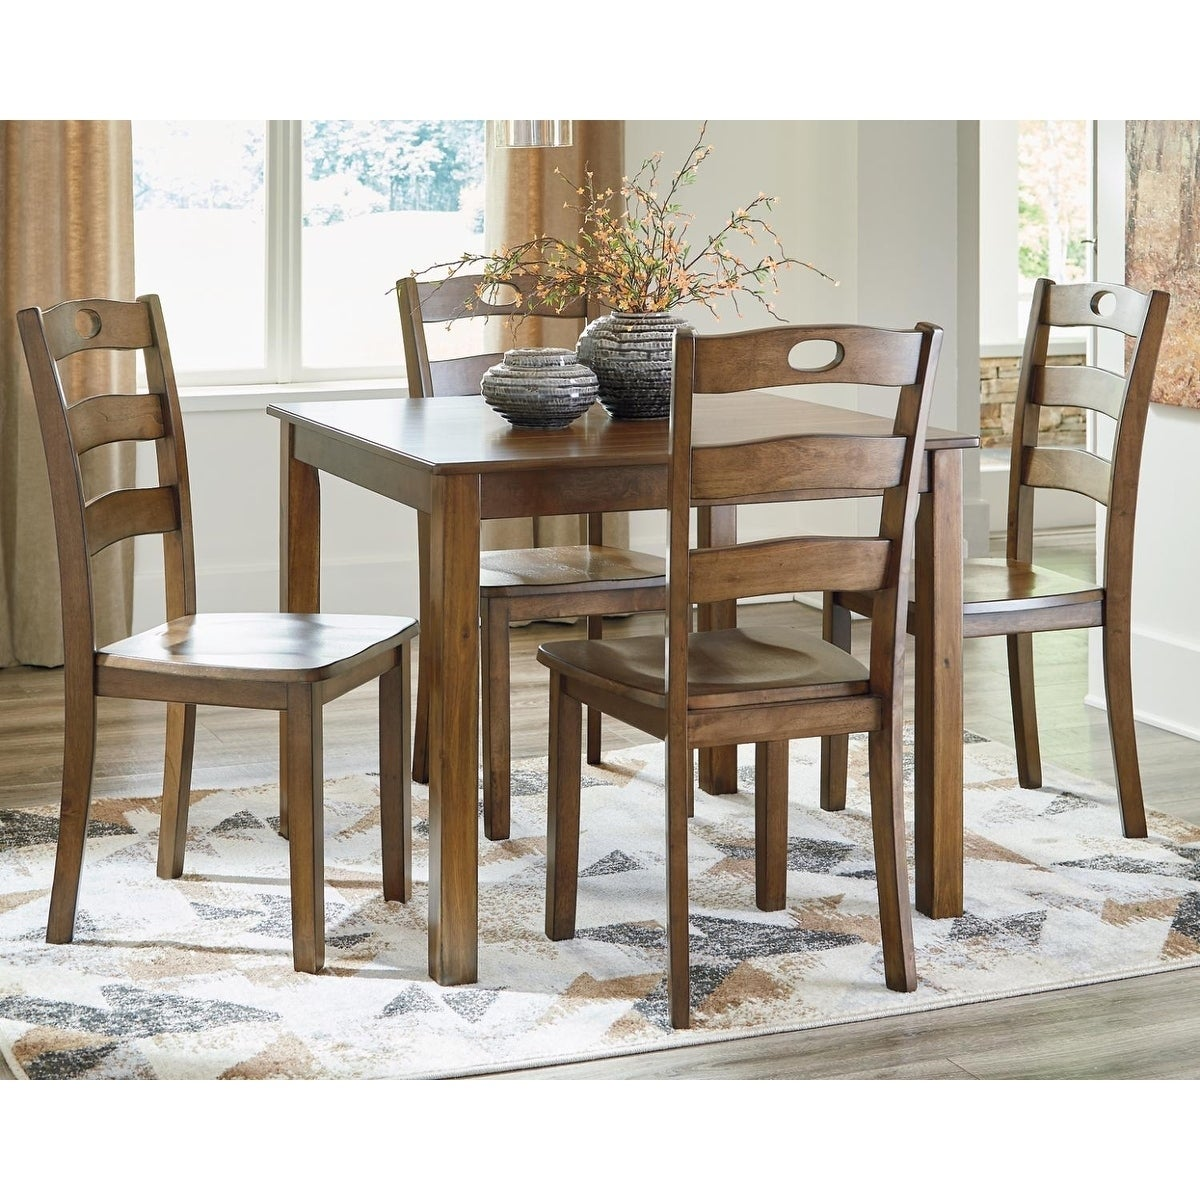 Hazelteen Square Dining Room Set Table And 4 Chairs Medium Brown Overstock 28029465